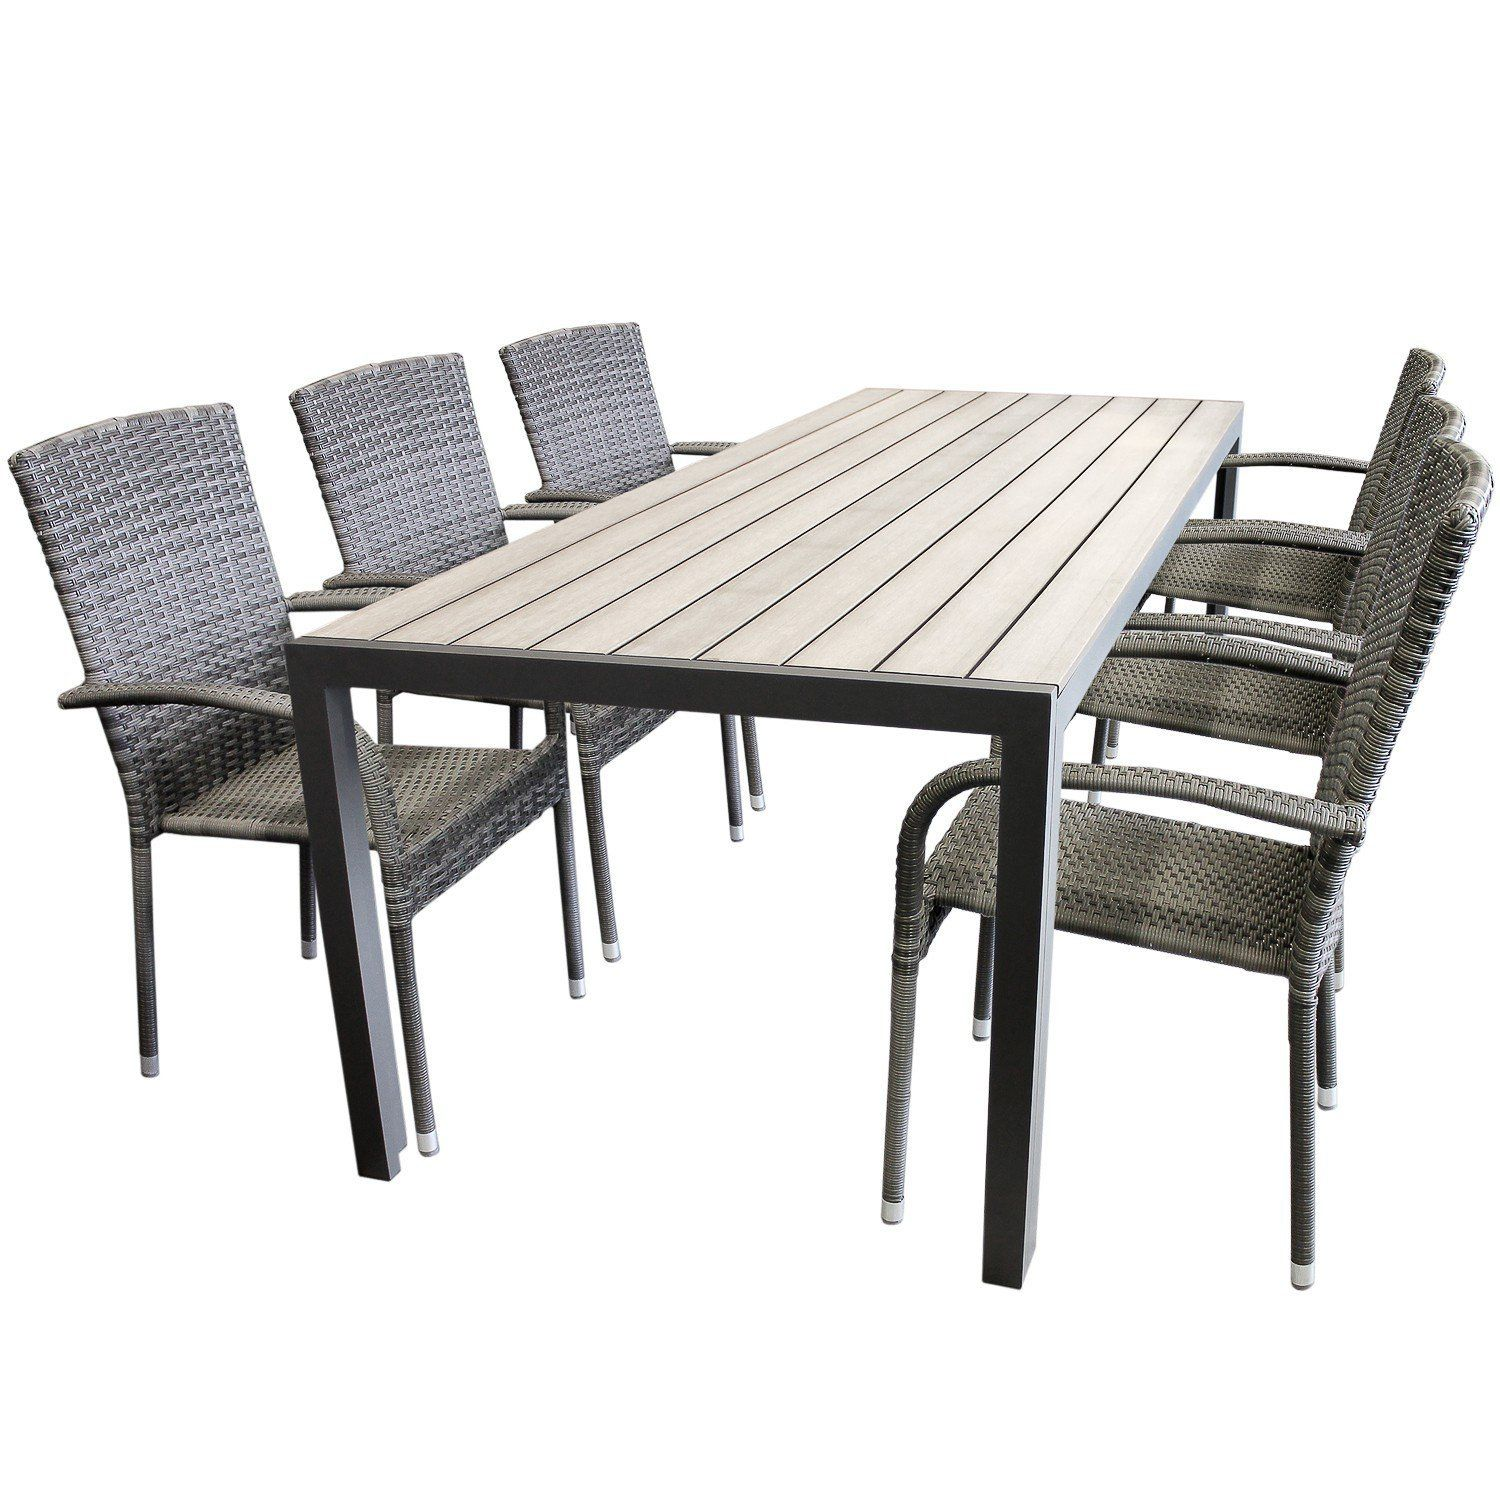 Gartengarnitur Alu 268 All Amazon De Elegant 7tlg Garden Furniture Aluminum